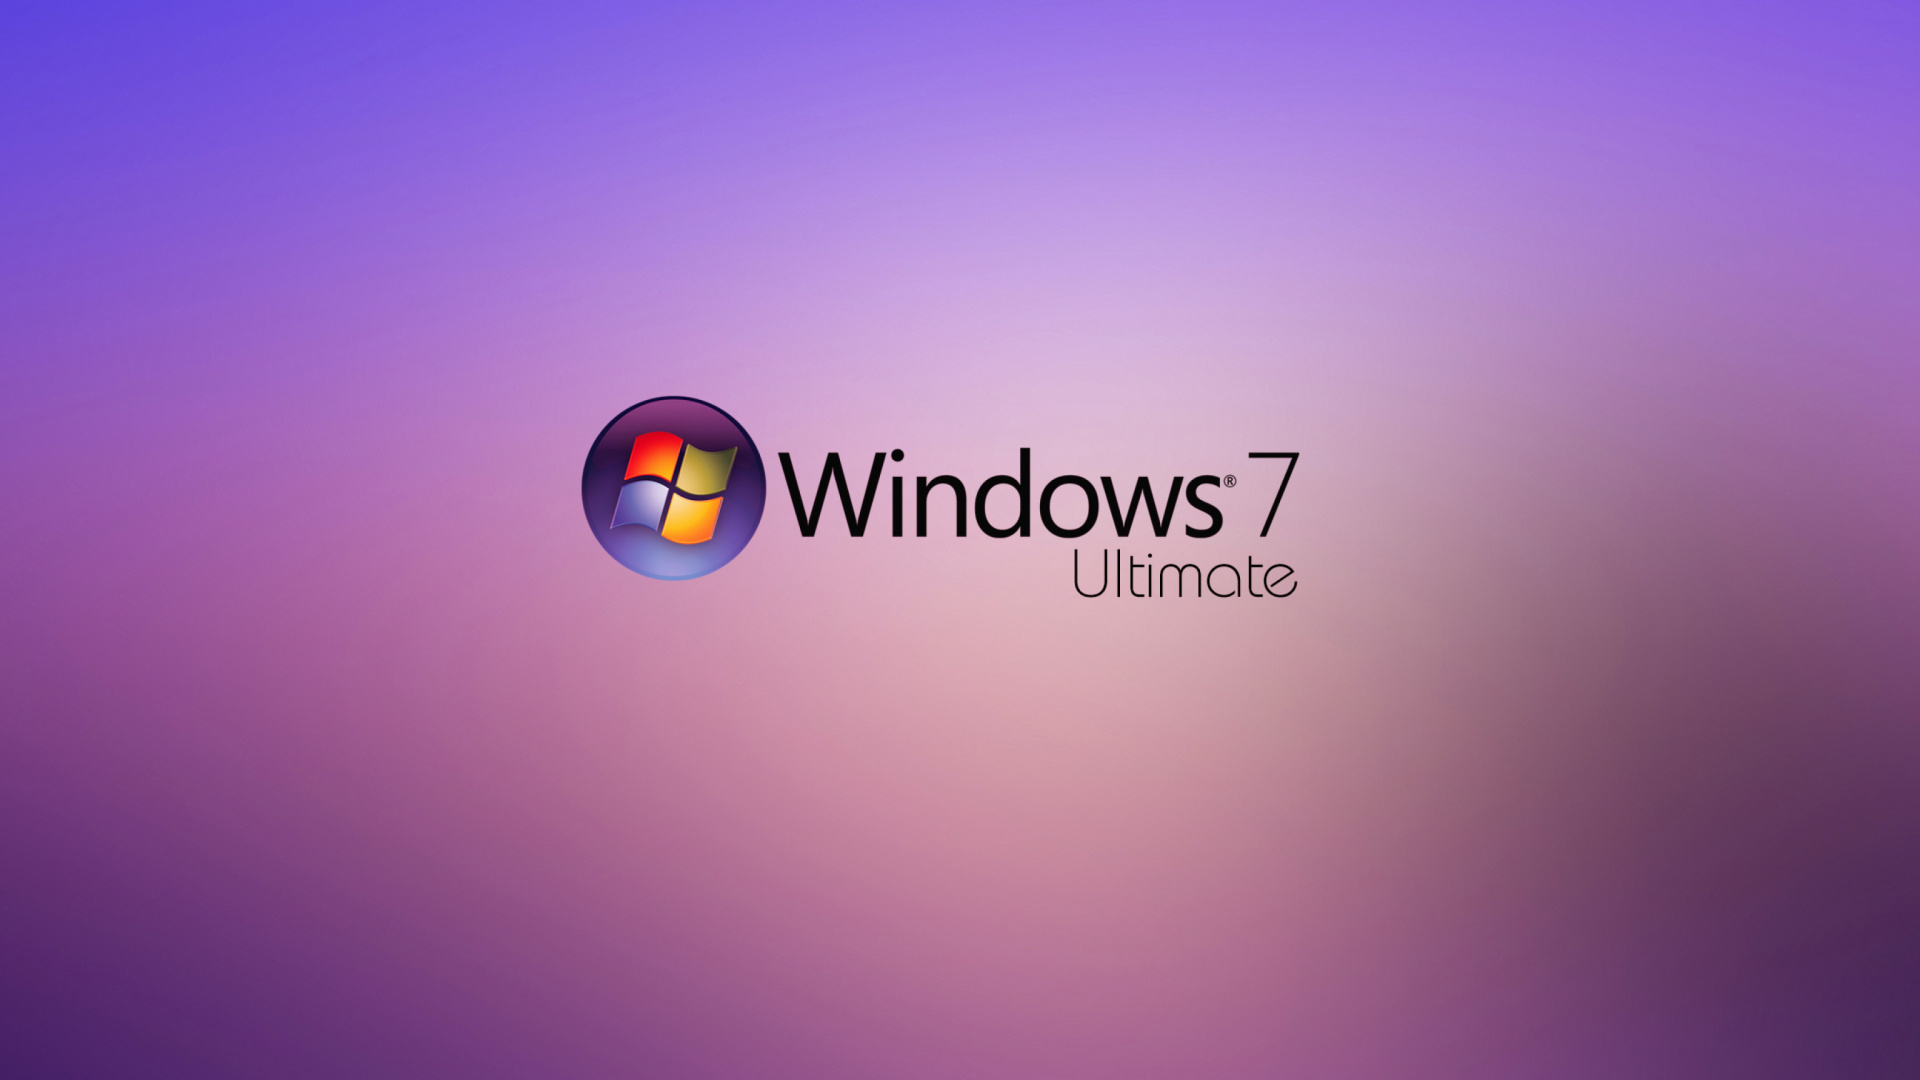 Fondos De Escritorio Windows 7 Full Hd: Fondos De Pantalla Gratis Para